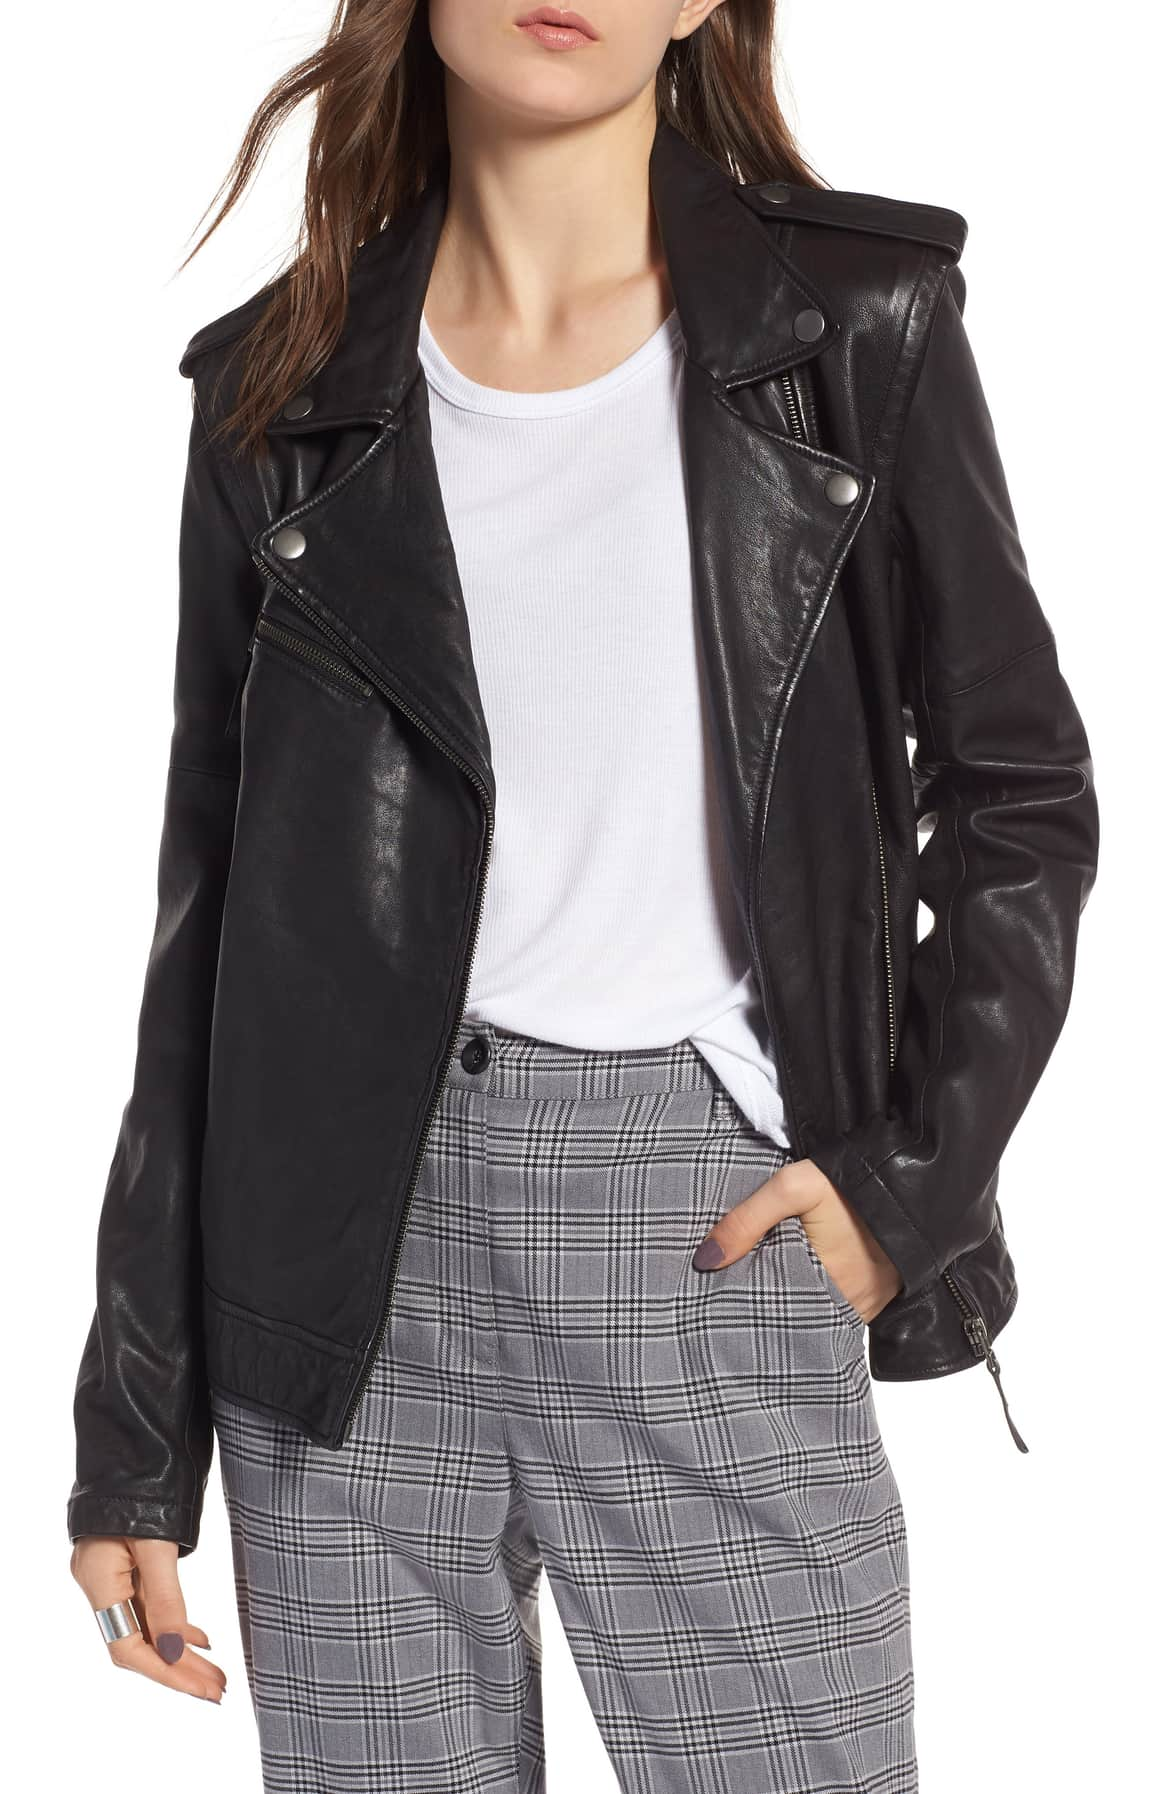 treasure and bond convertible leather jacket